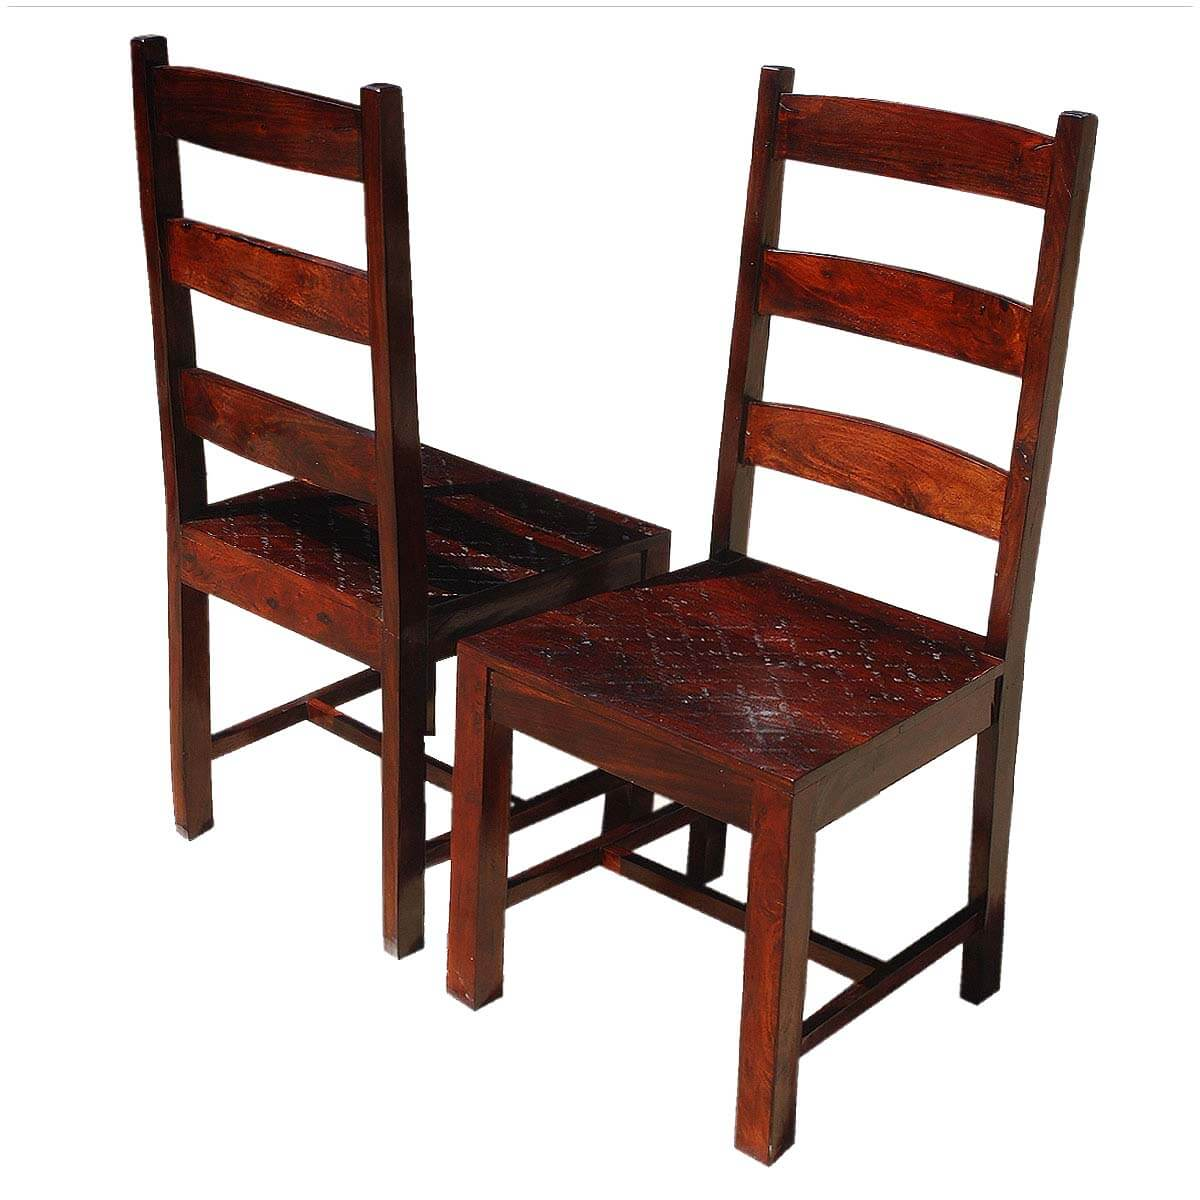 Oklahoma Farmhouse Solid Wood Ladder Back Chairs Set of 2